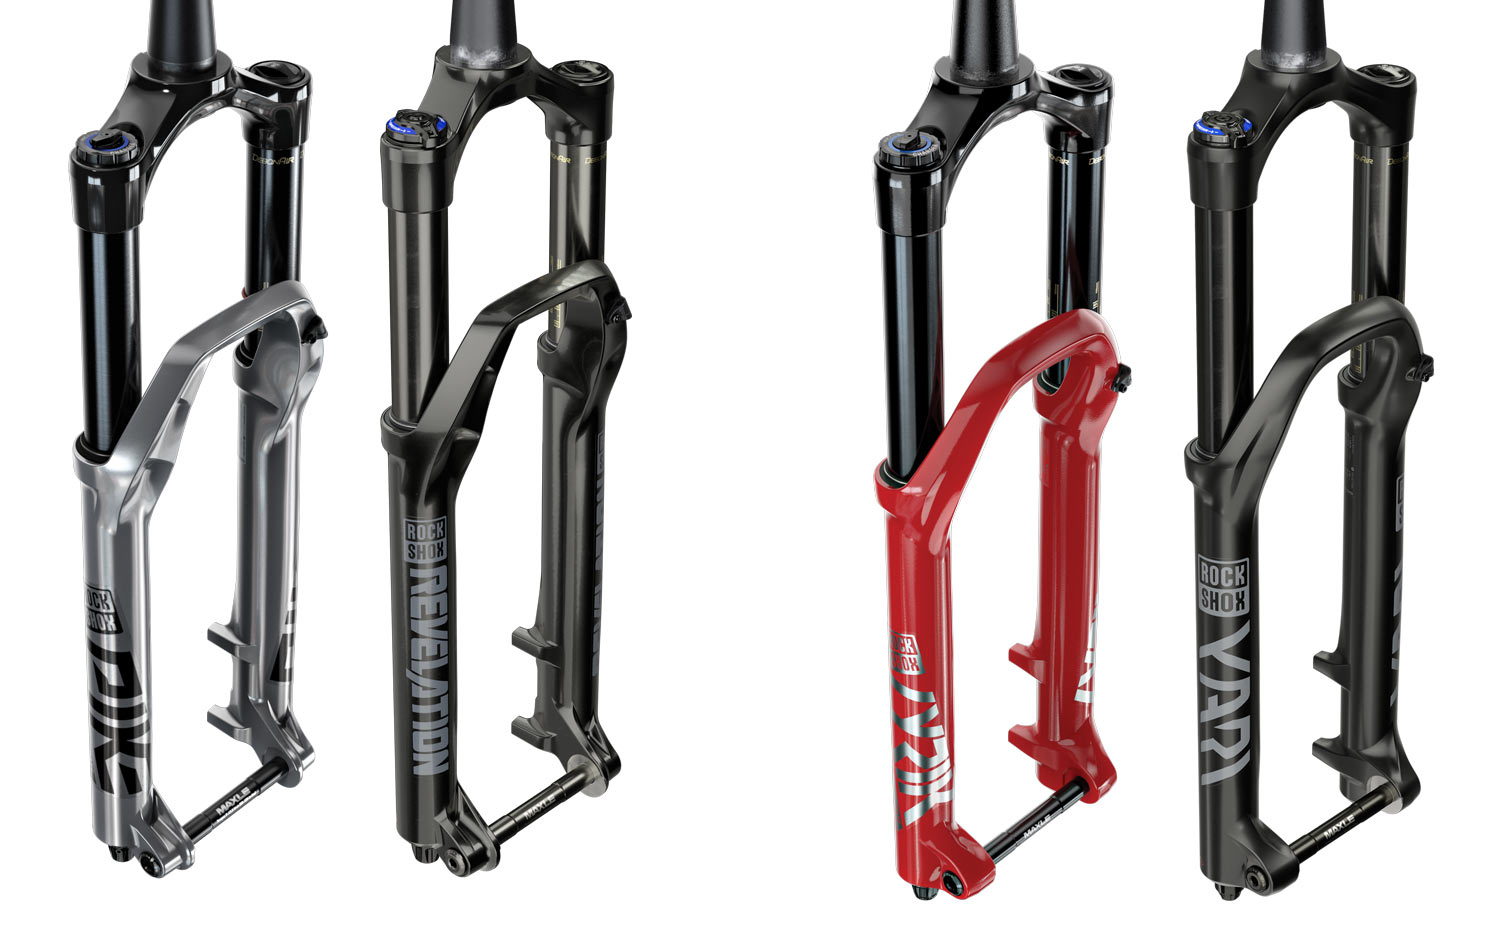 2021 rockshox fork specs and prices